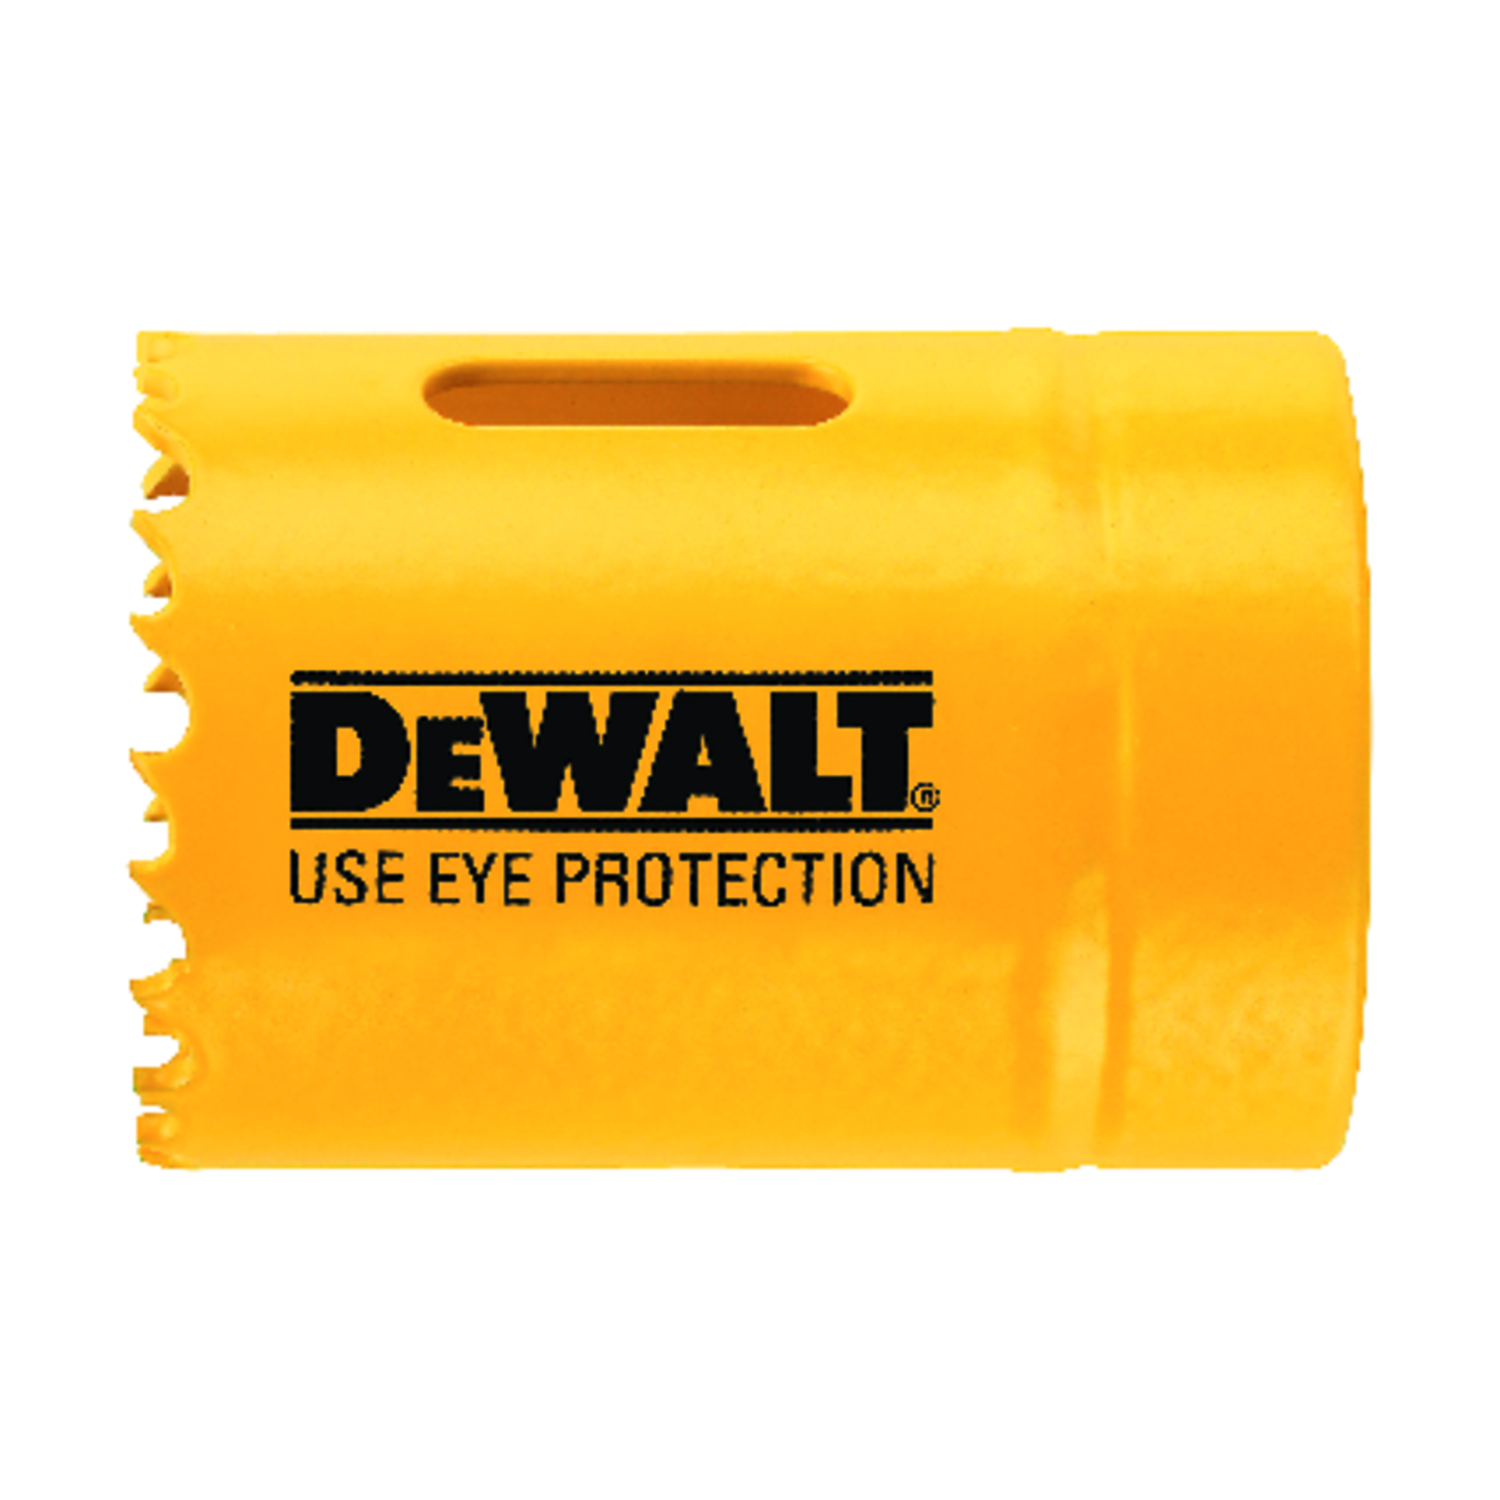 DeWalt  1.75 in. L x 1-3/4 in. Dia. Bi-Metal  1 pc. Hole Saw  1/4 in.